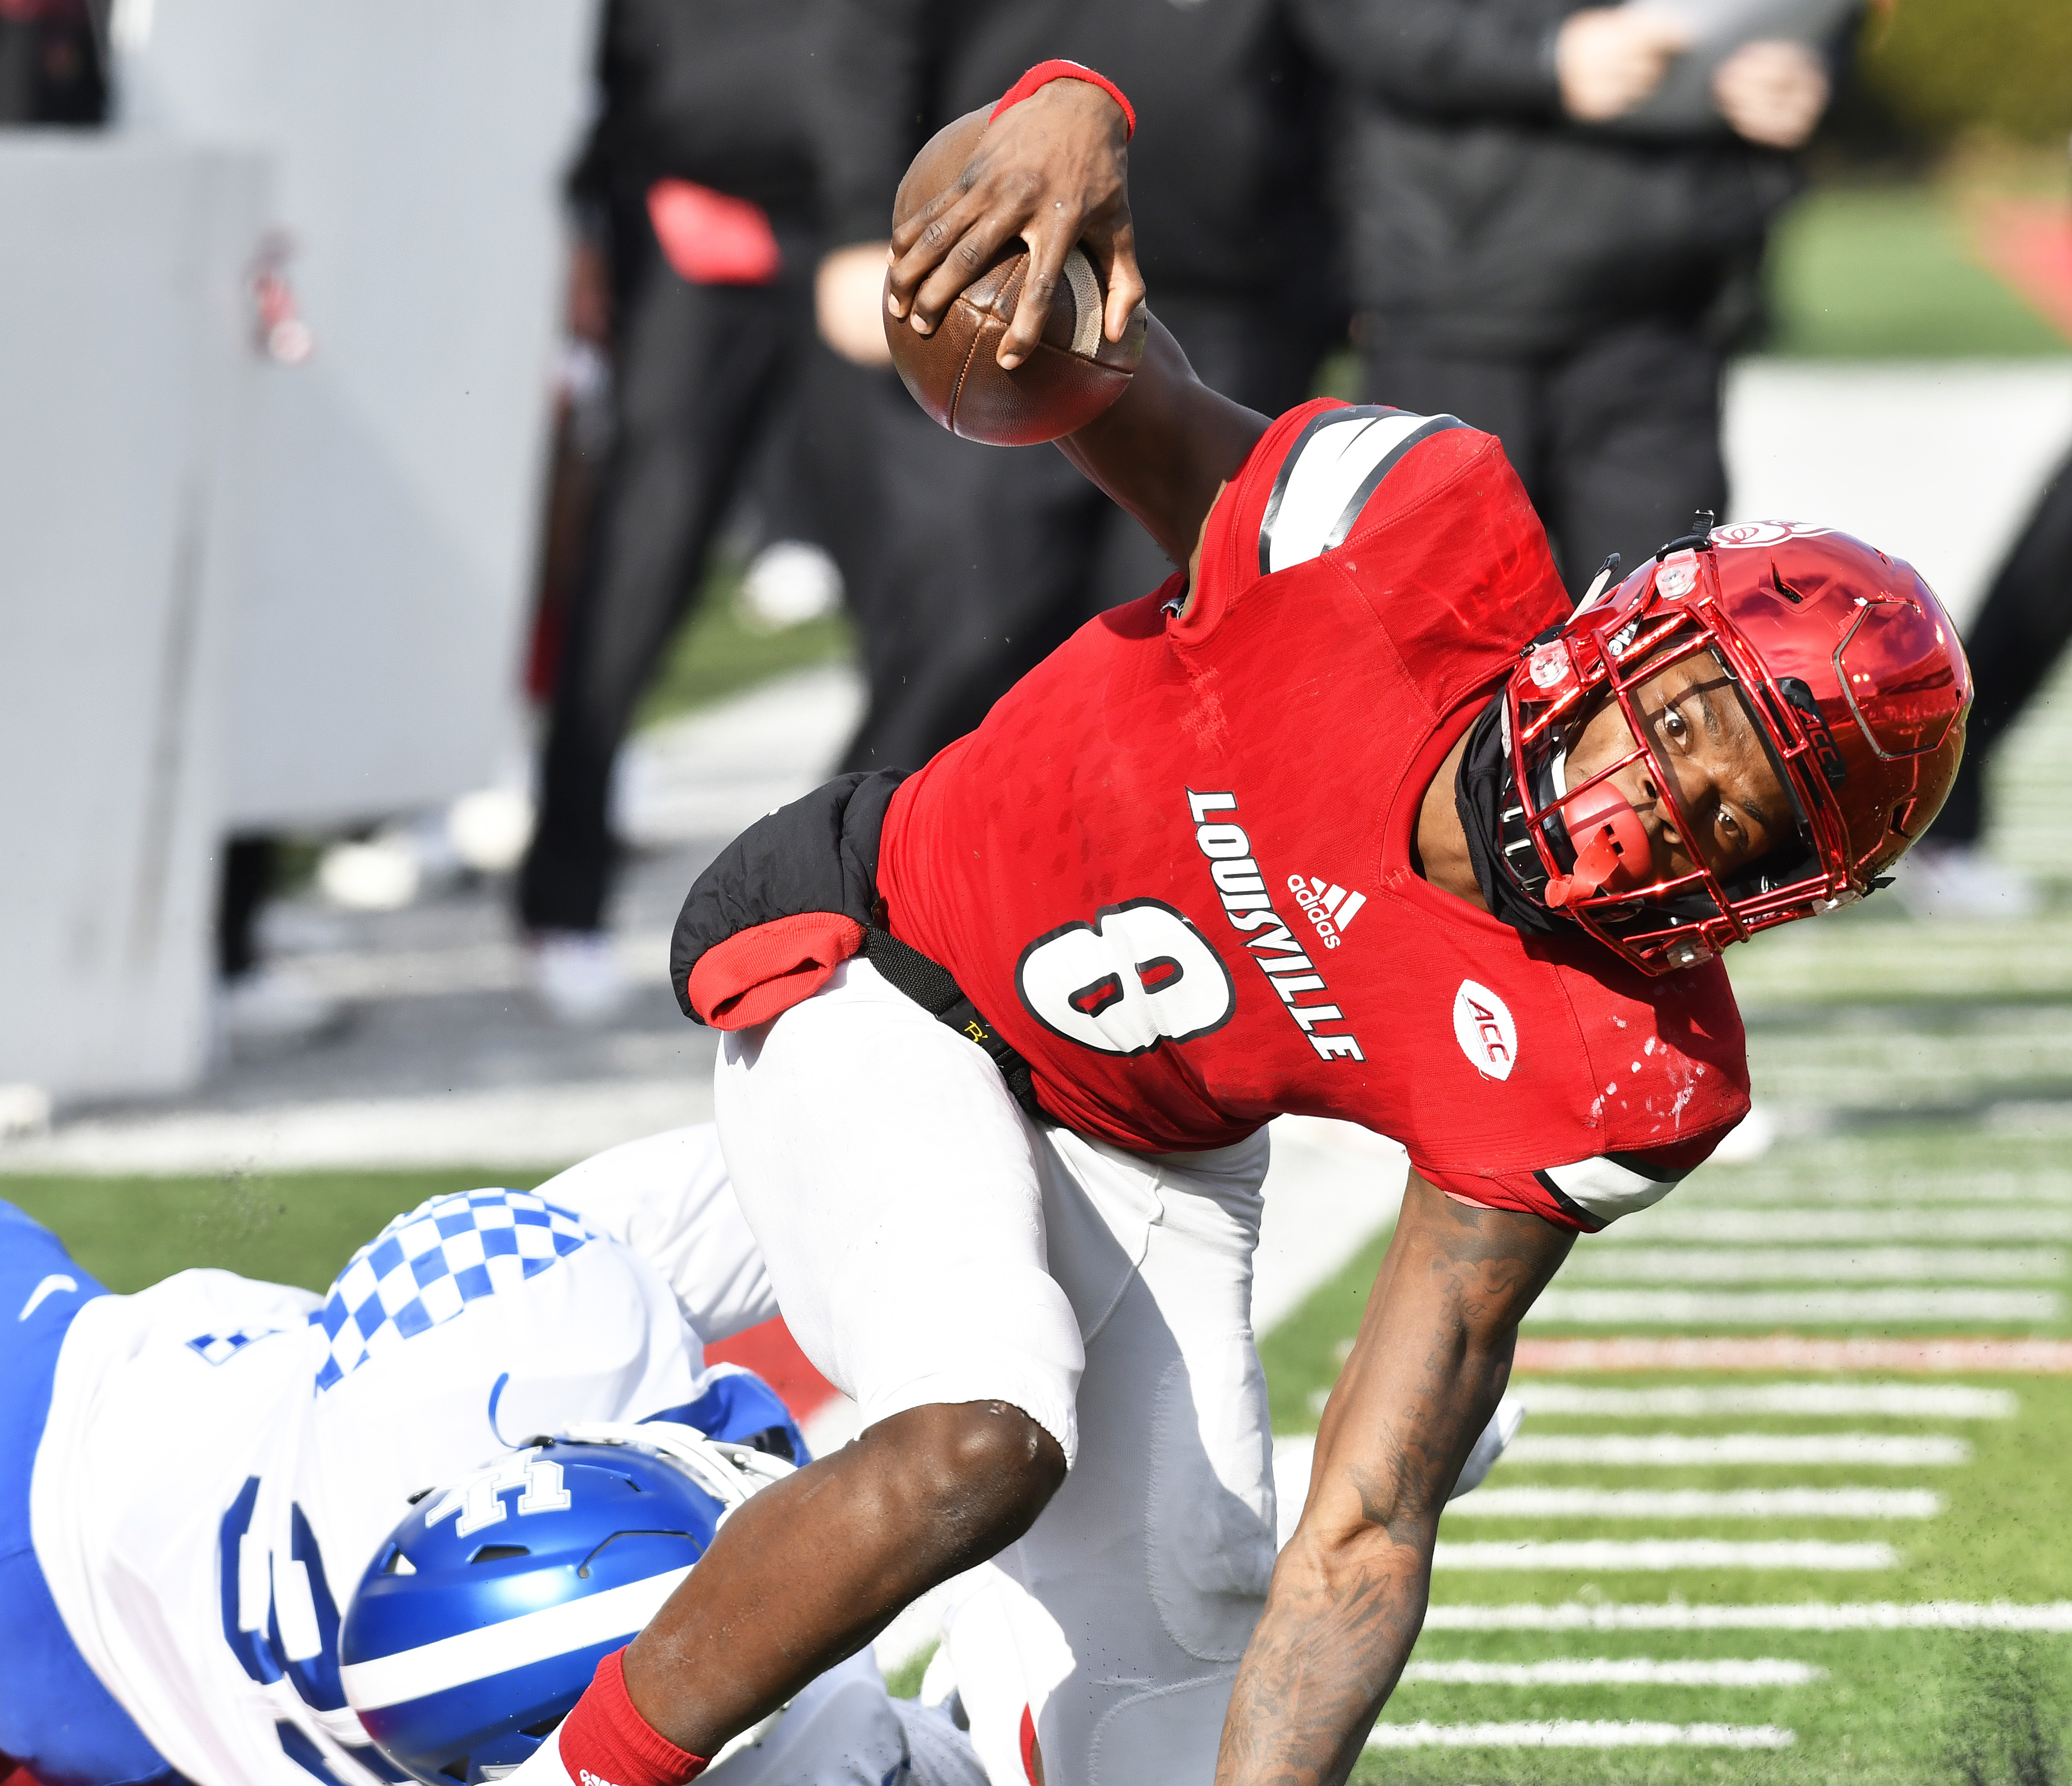 Louisville quarterback Lamar Jackson (8) is brought down by Kentucky's Denzil Ware (35) during the second half of an NCAA college football game, Saturday, Nov. 26, 2016, in Louisville, Ky. Kentucky won 41-38. (AP Photo/Timothy D. Easley)